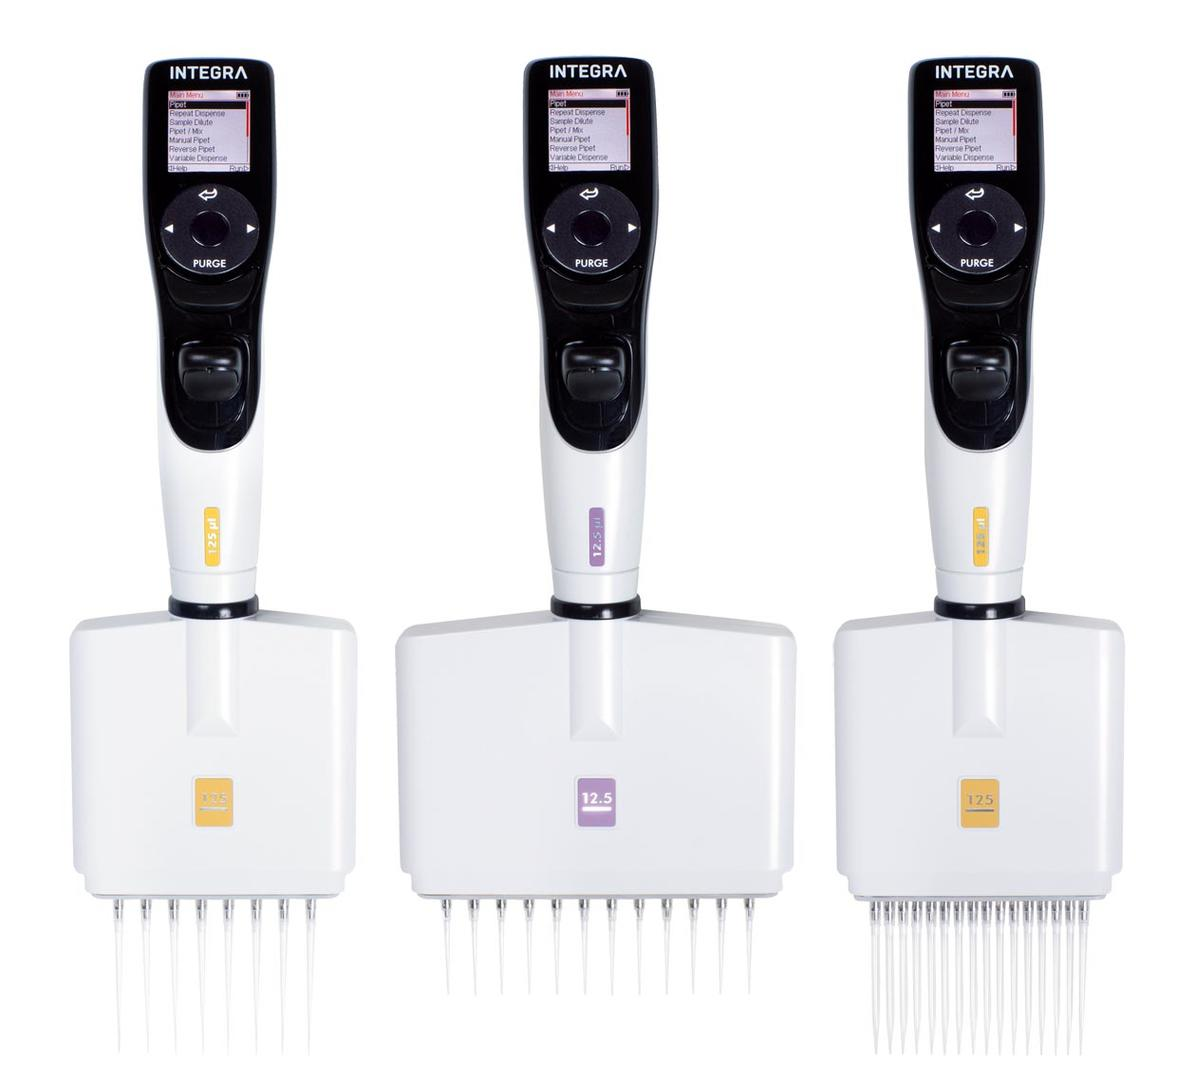 VIAFLO II multichannel electronic pipettes